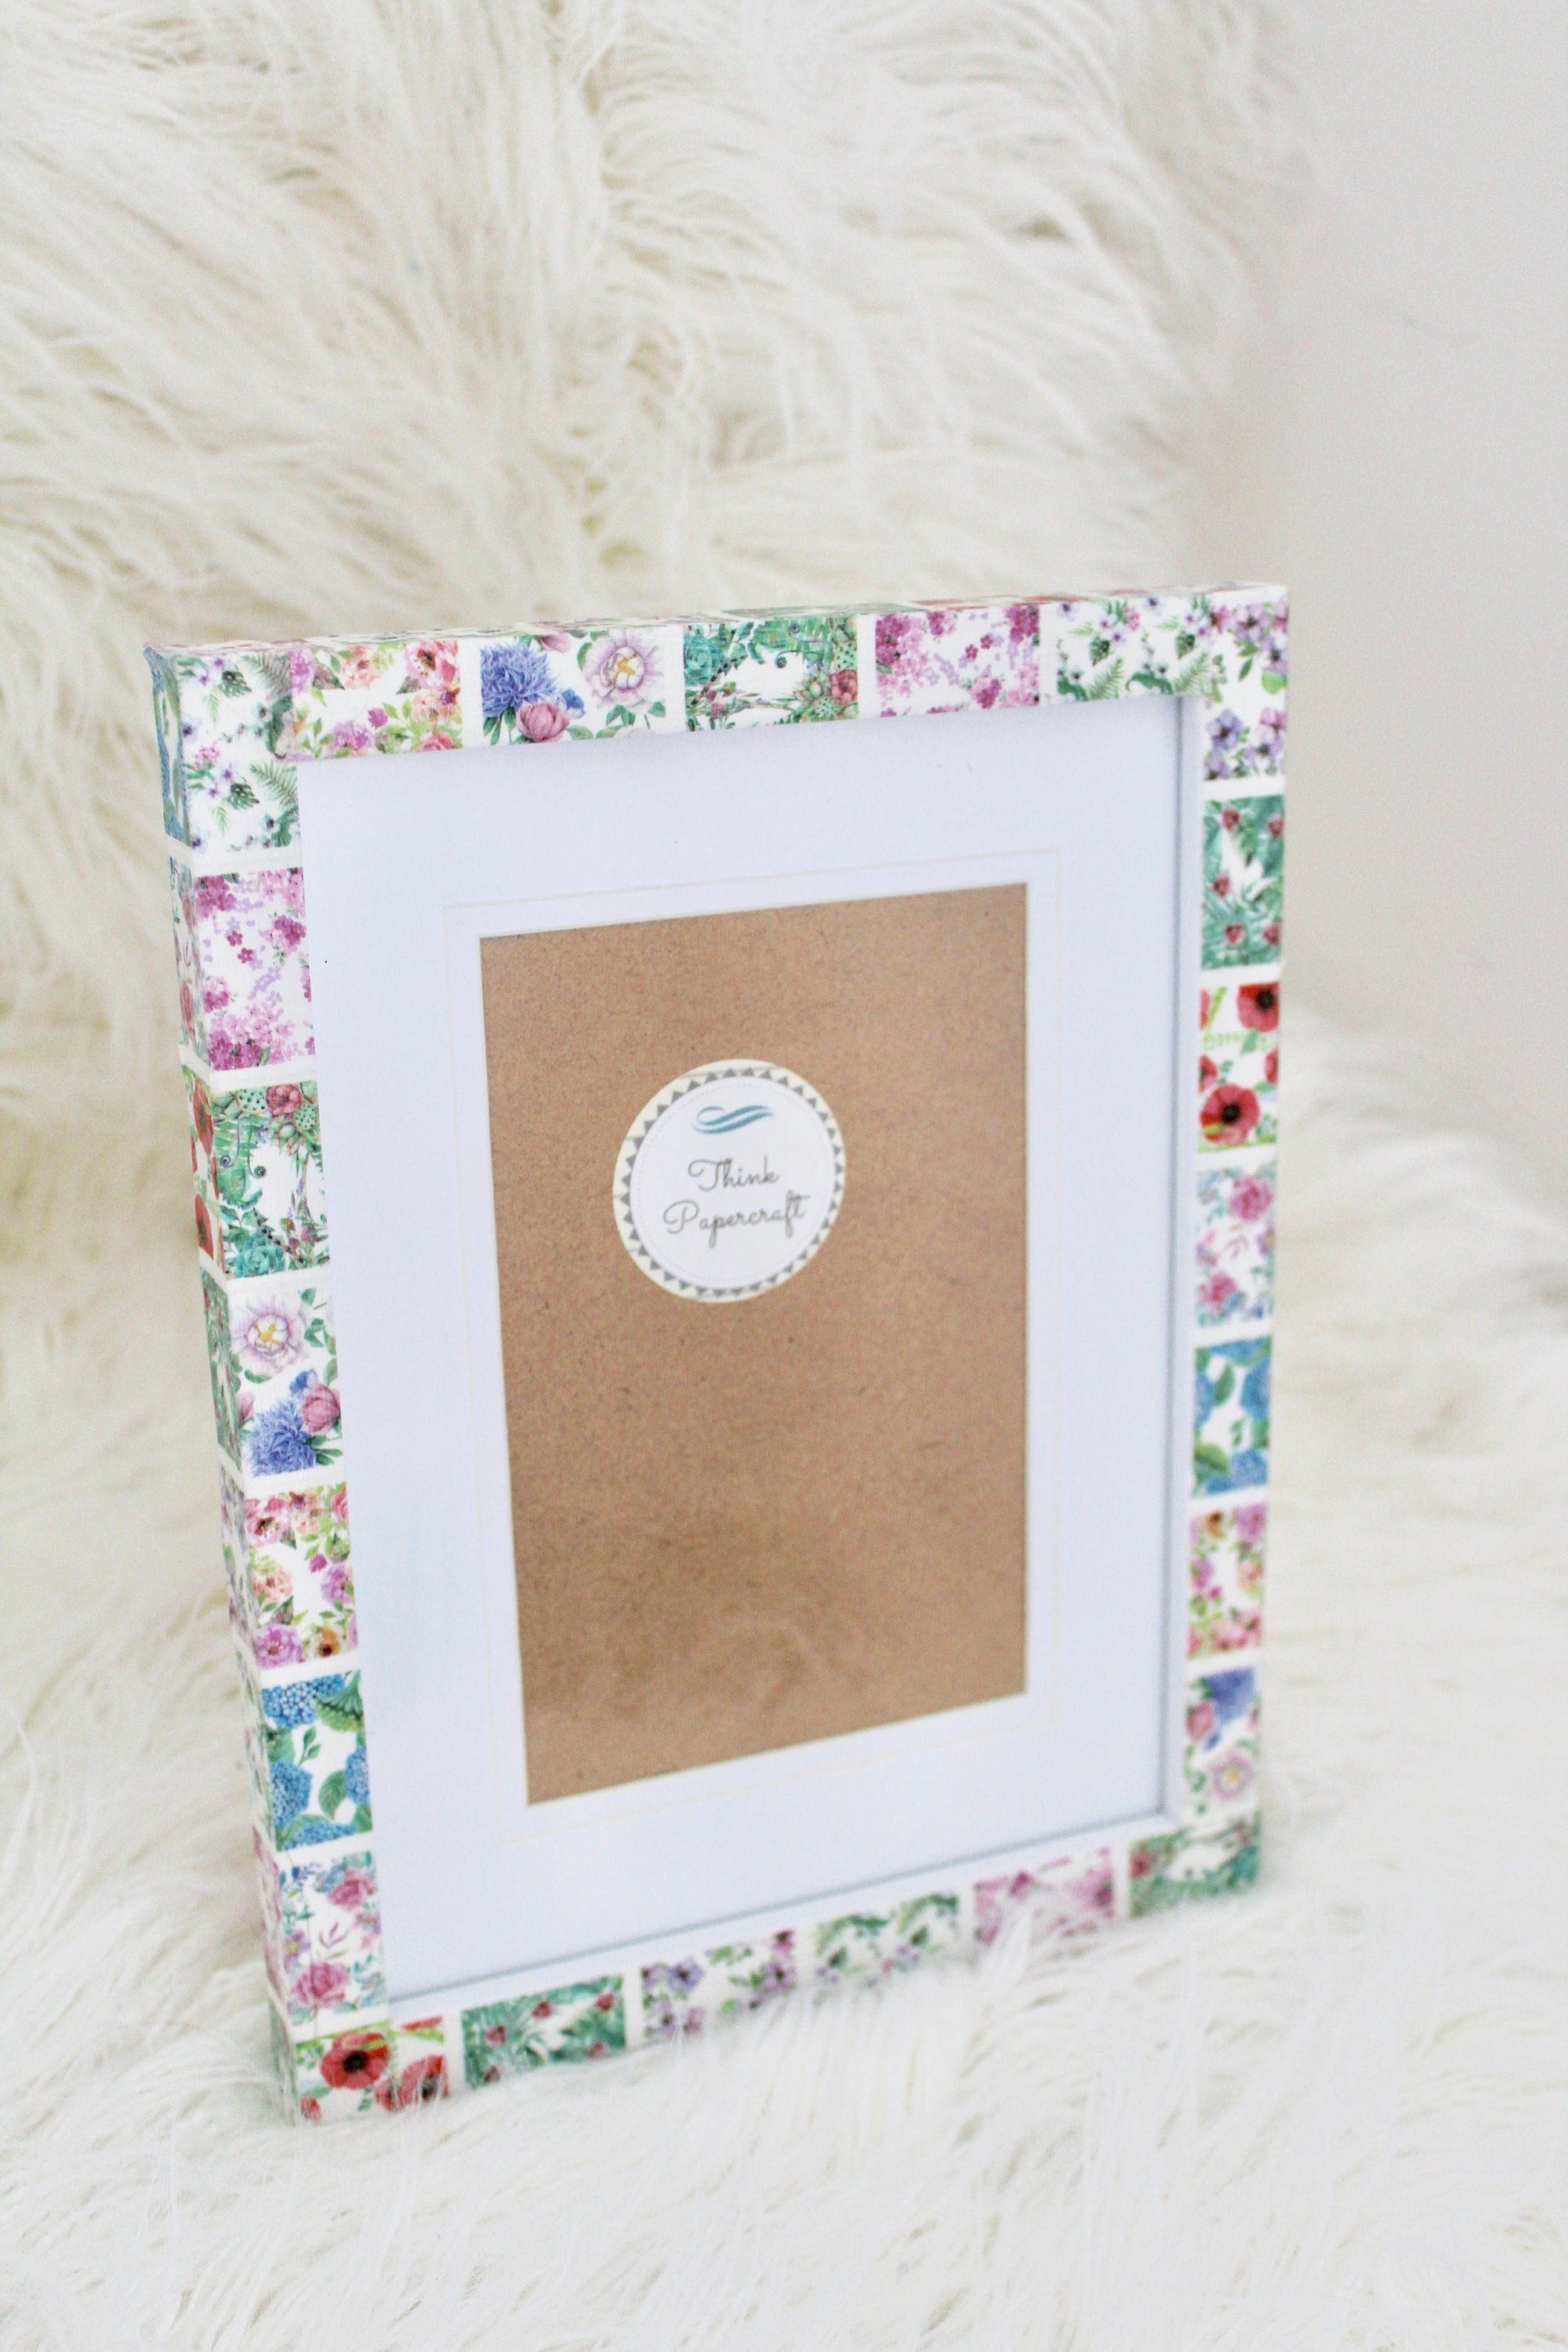 Floral Flowers Theme Decorated Photo Picture Frame 4x6 Inches 10x15 Cms Mount Or Frame 6x8 Inches 15x20 Cms With Poppy And Hydrangea Photo Decor Photo Picture Frames Frame